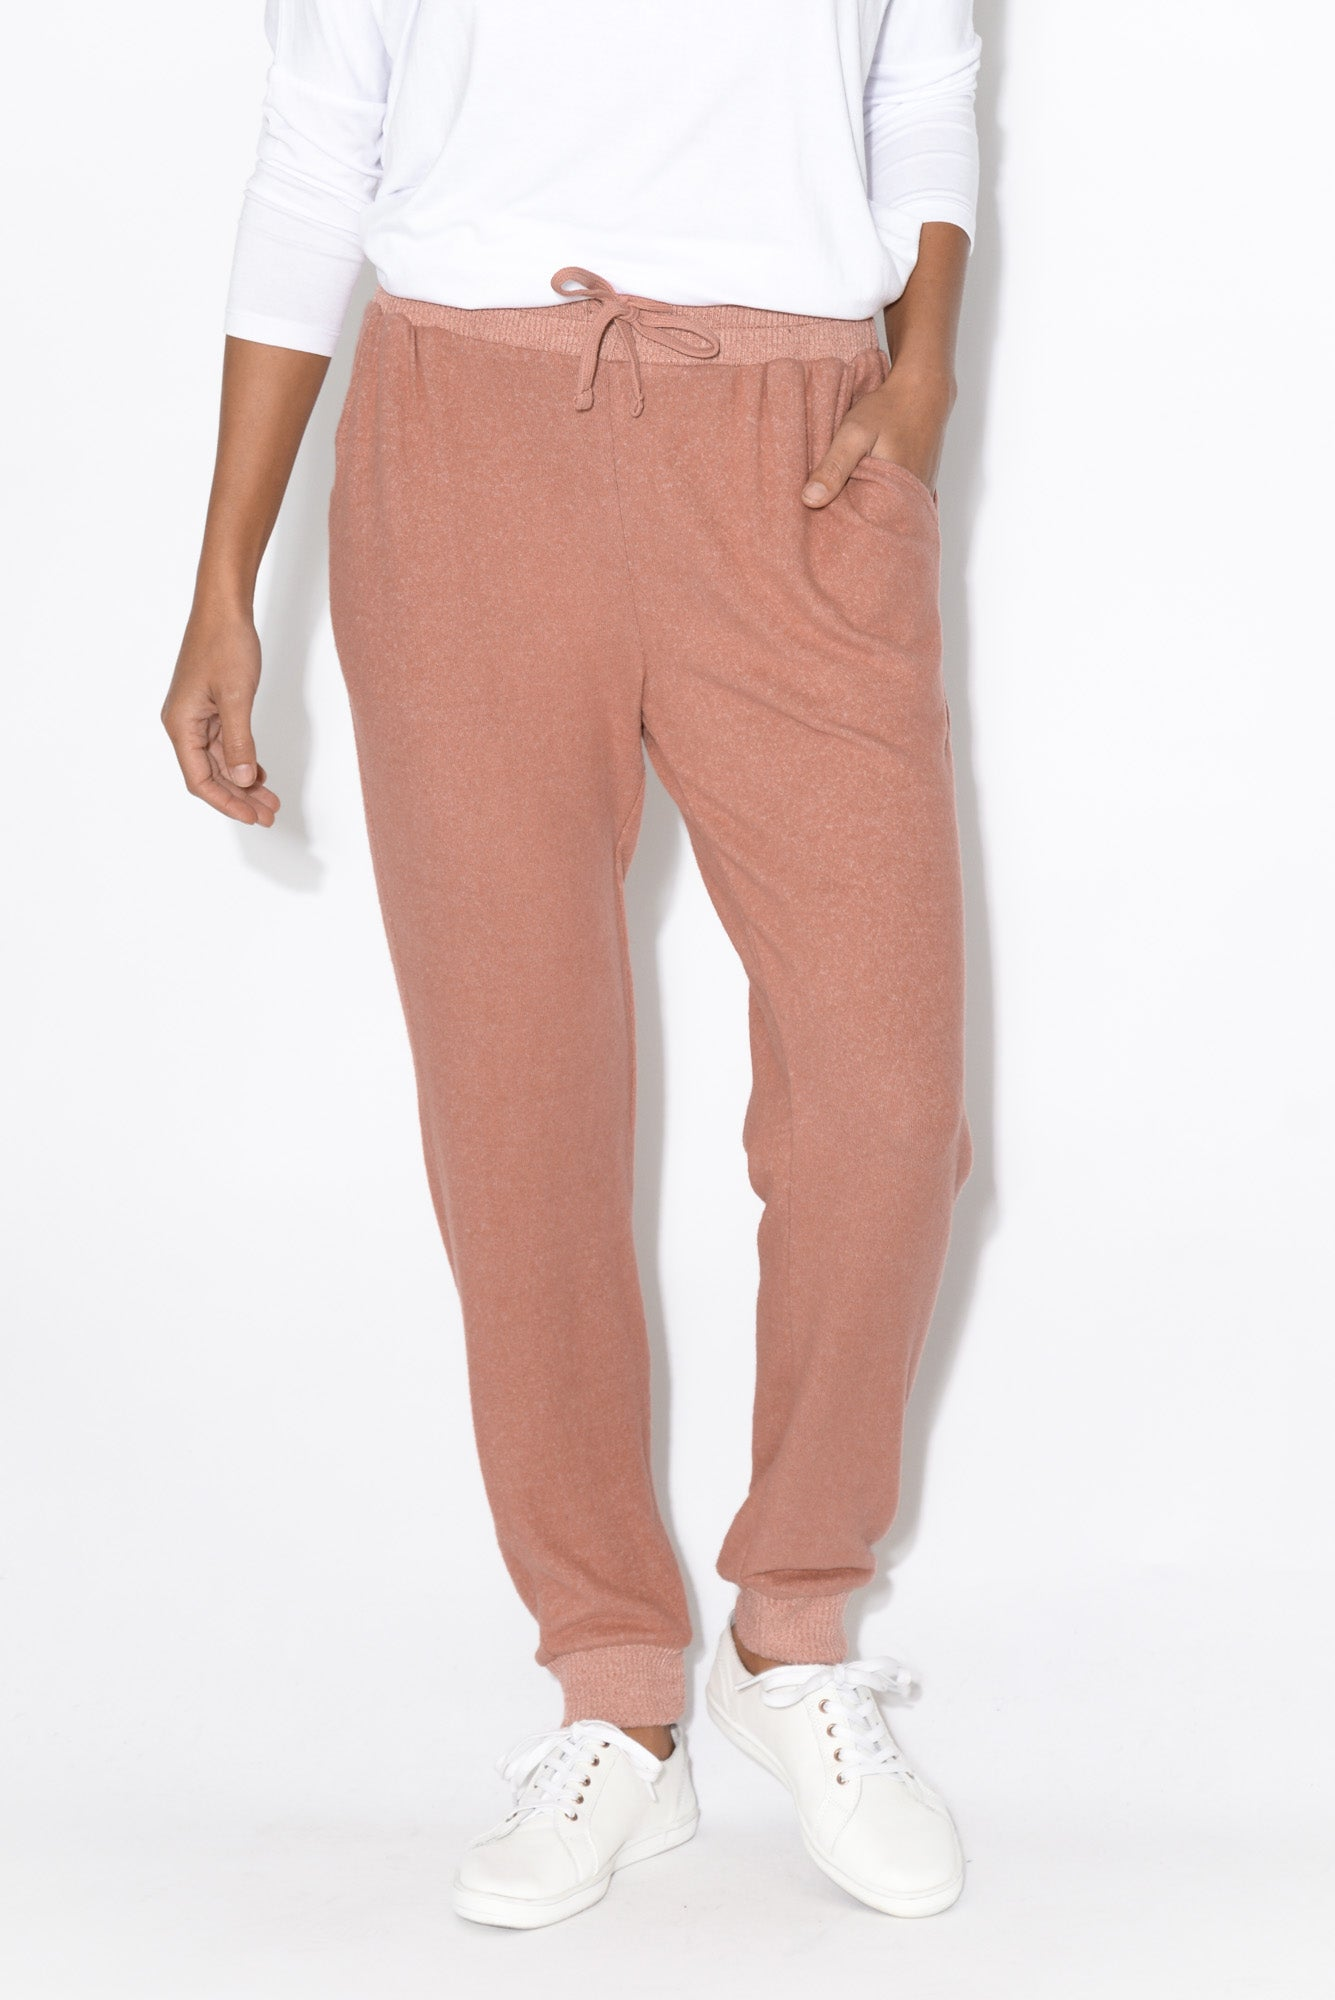 Emerson Dusty Rose Pant